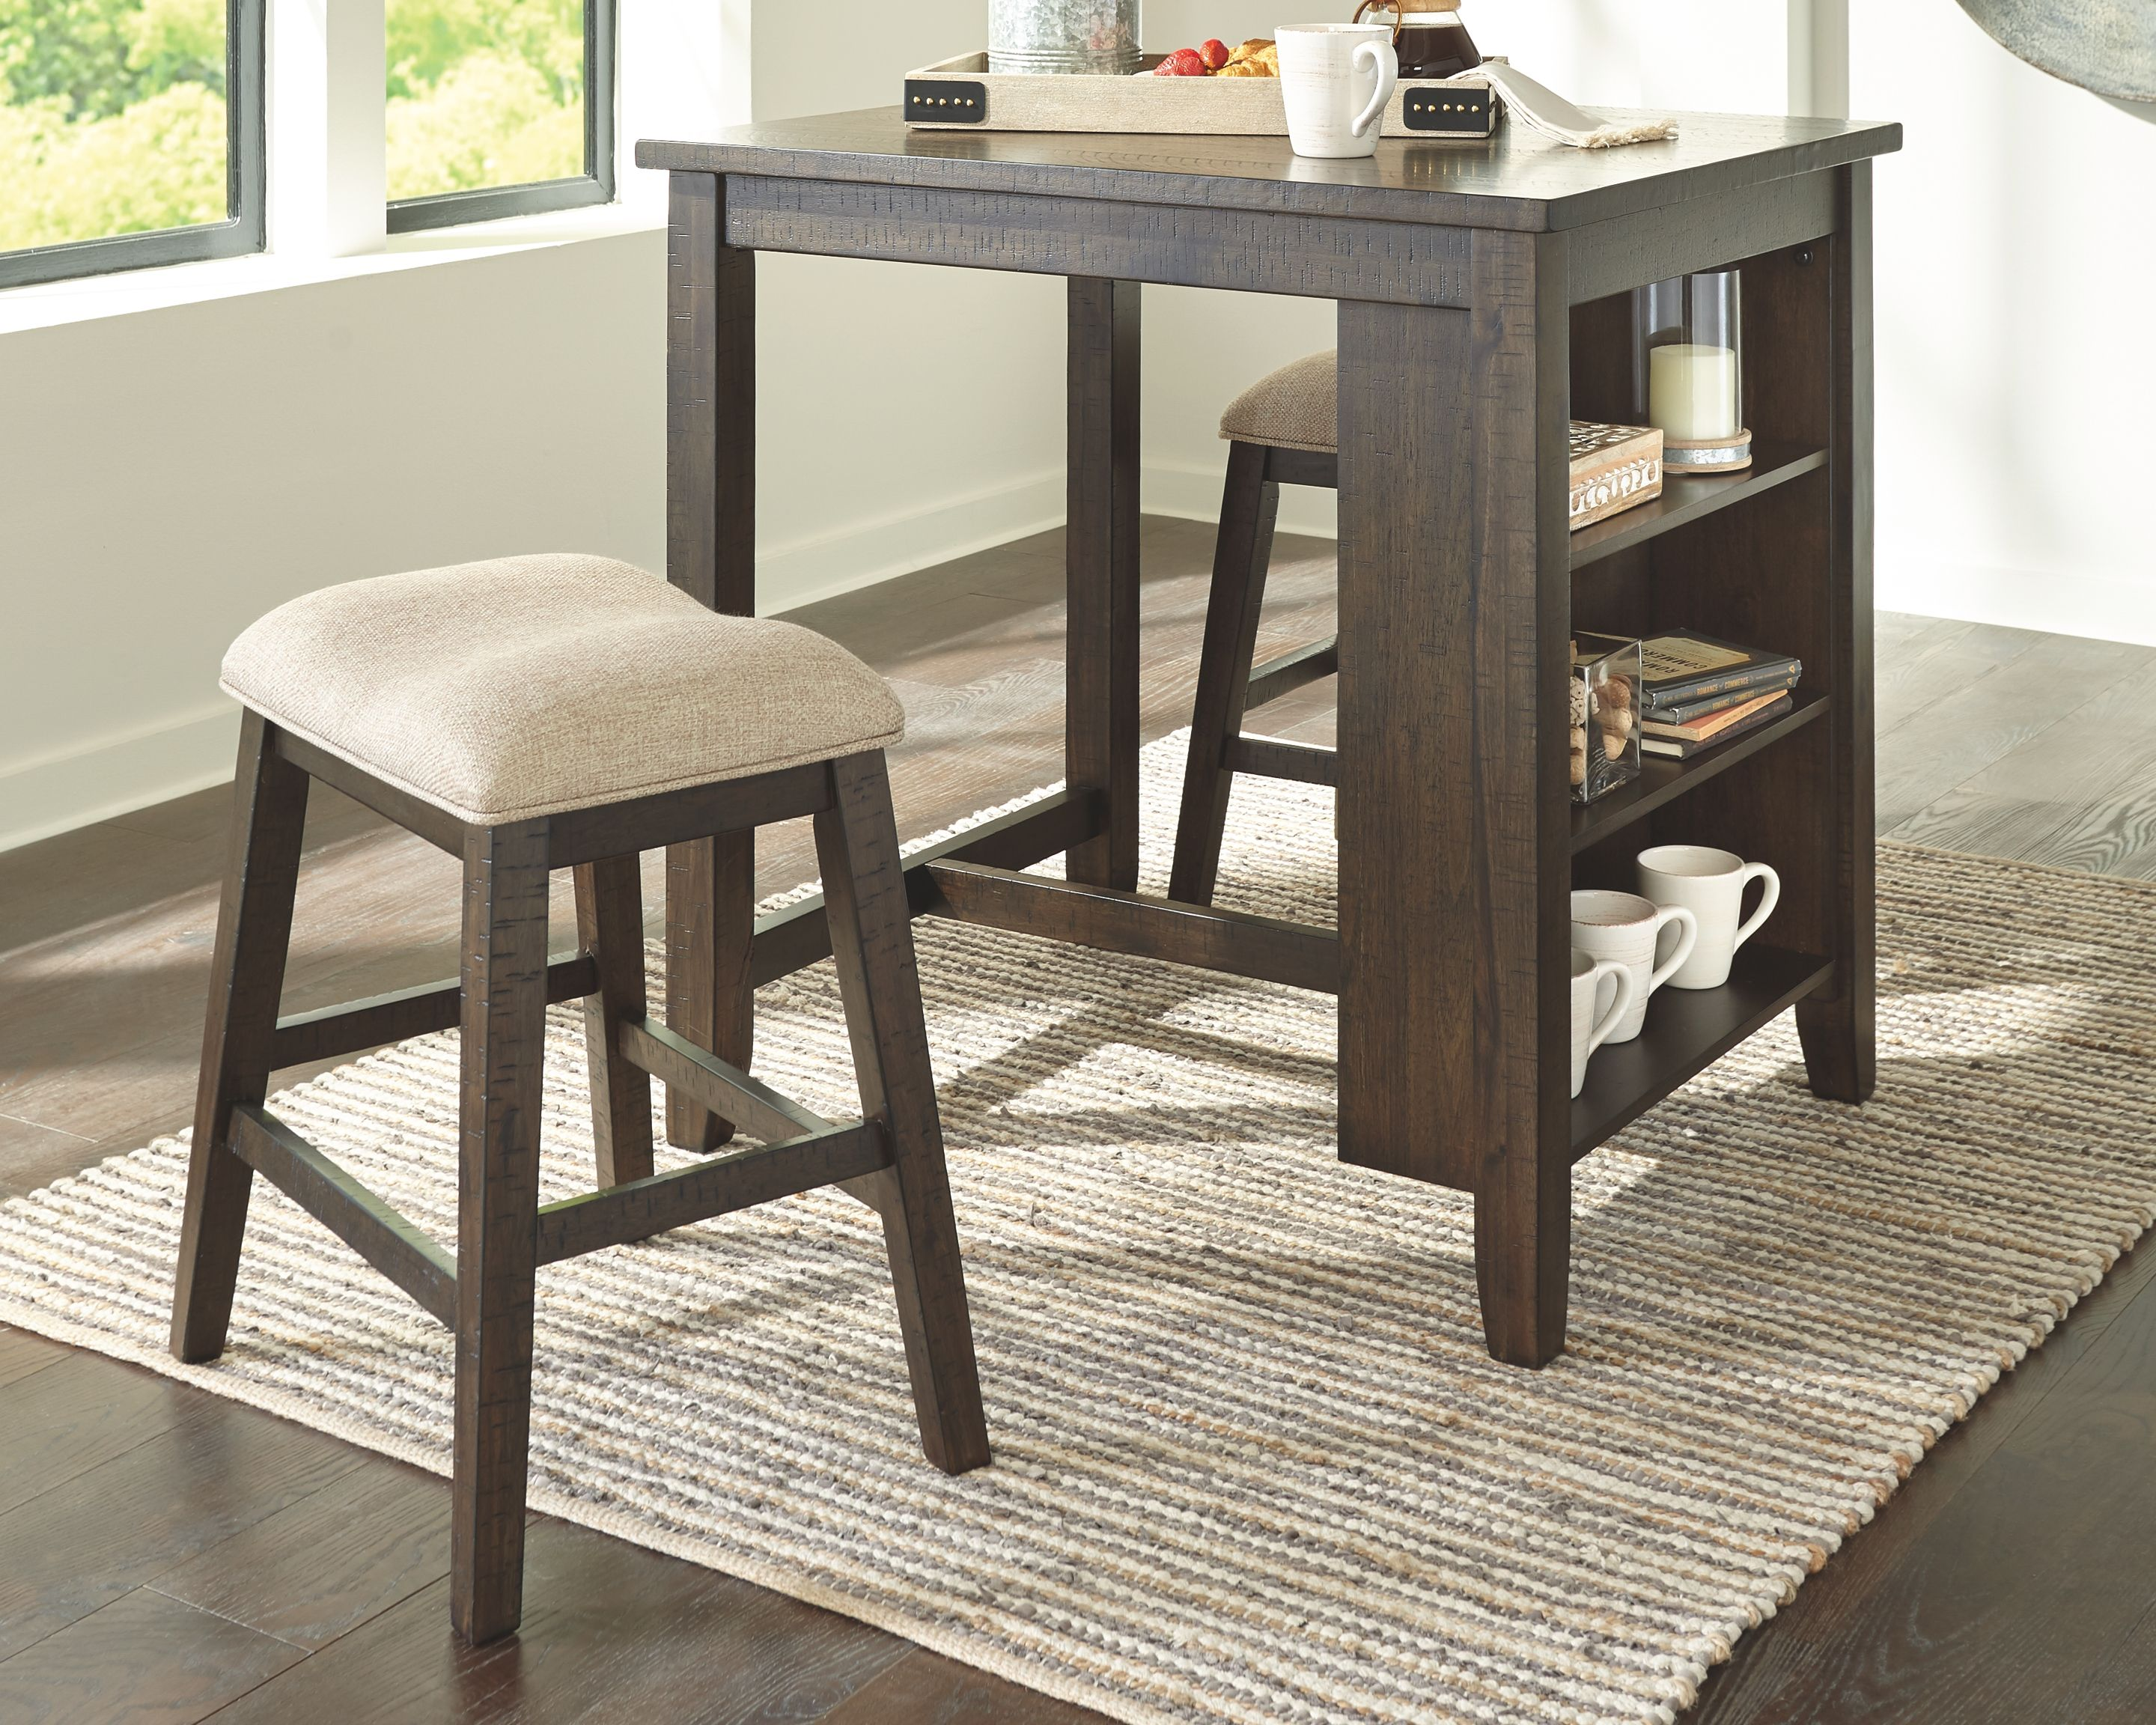 Rokane Counter Height Dining Table And Bar Stools Set Of 3 Light Brown In 2021 Counter Height Dining Room Tables Counter Height Dining Table Upholstered Bar Stools